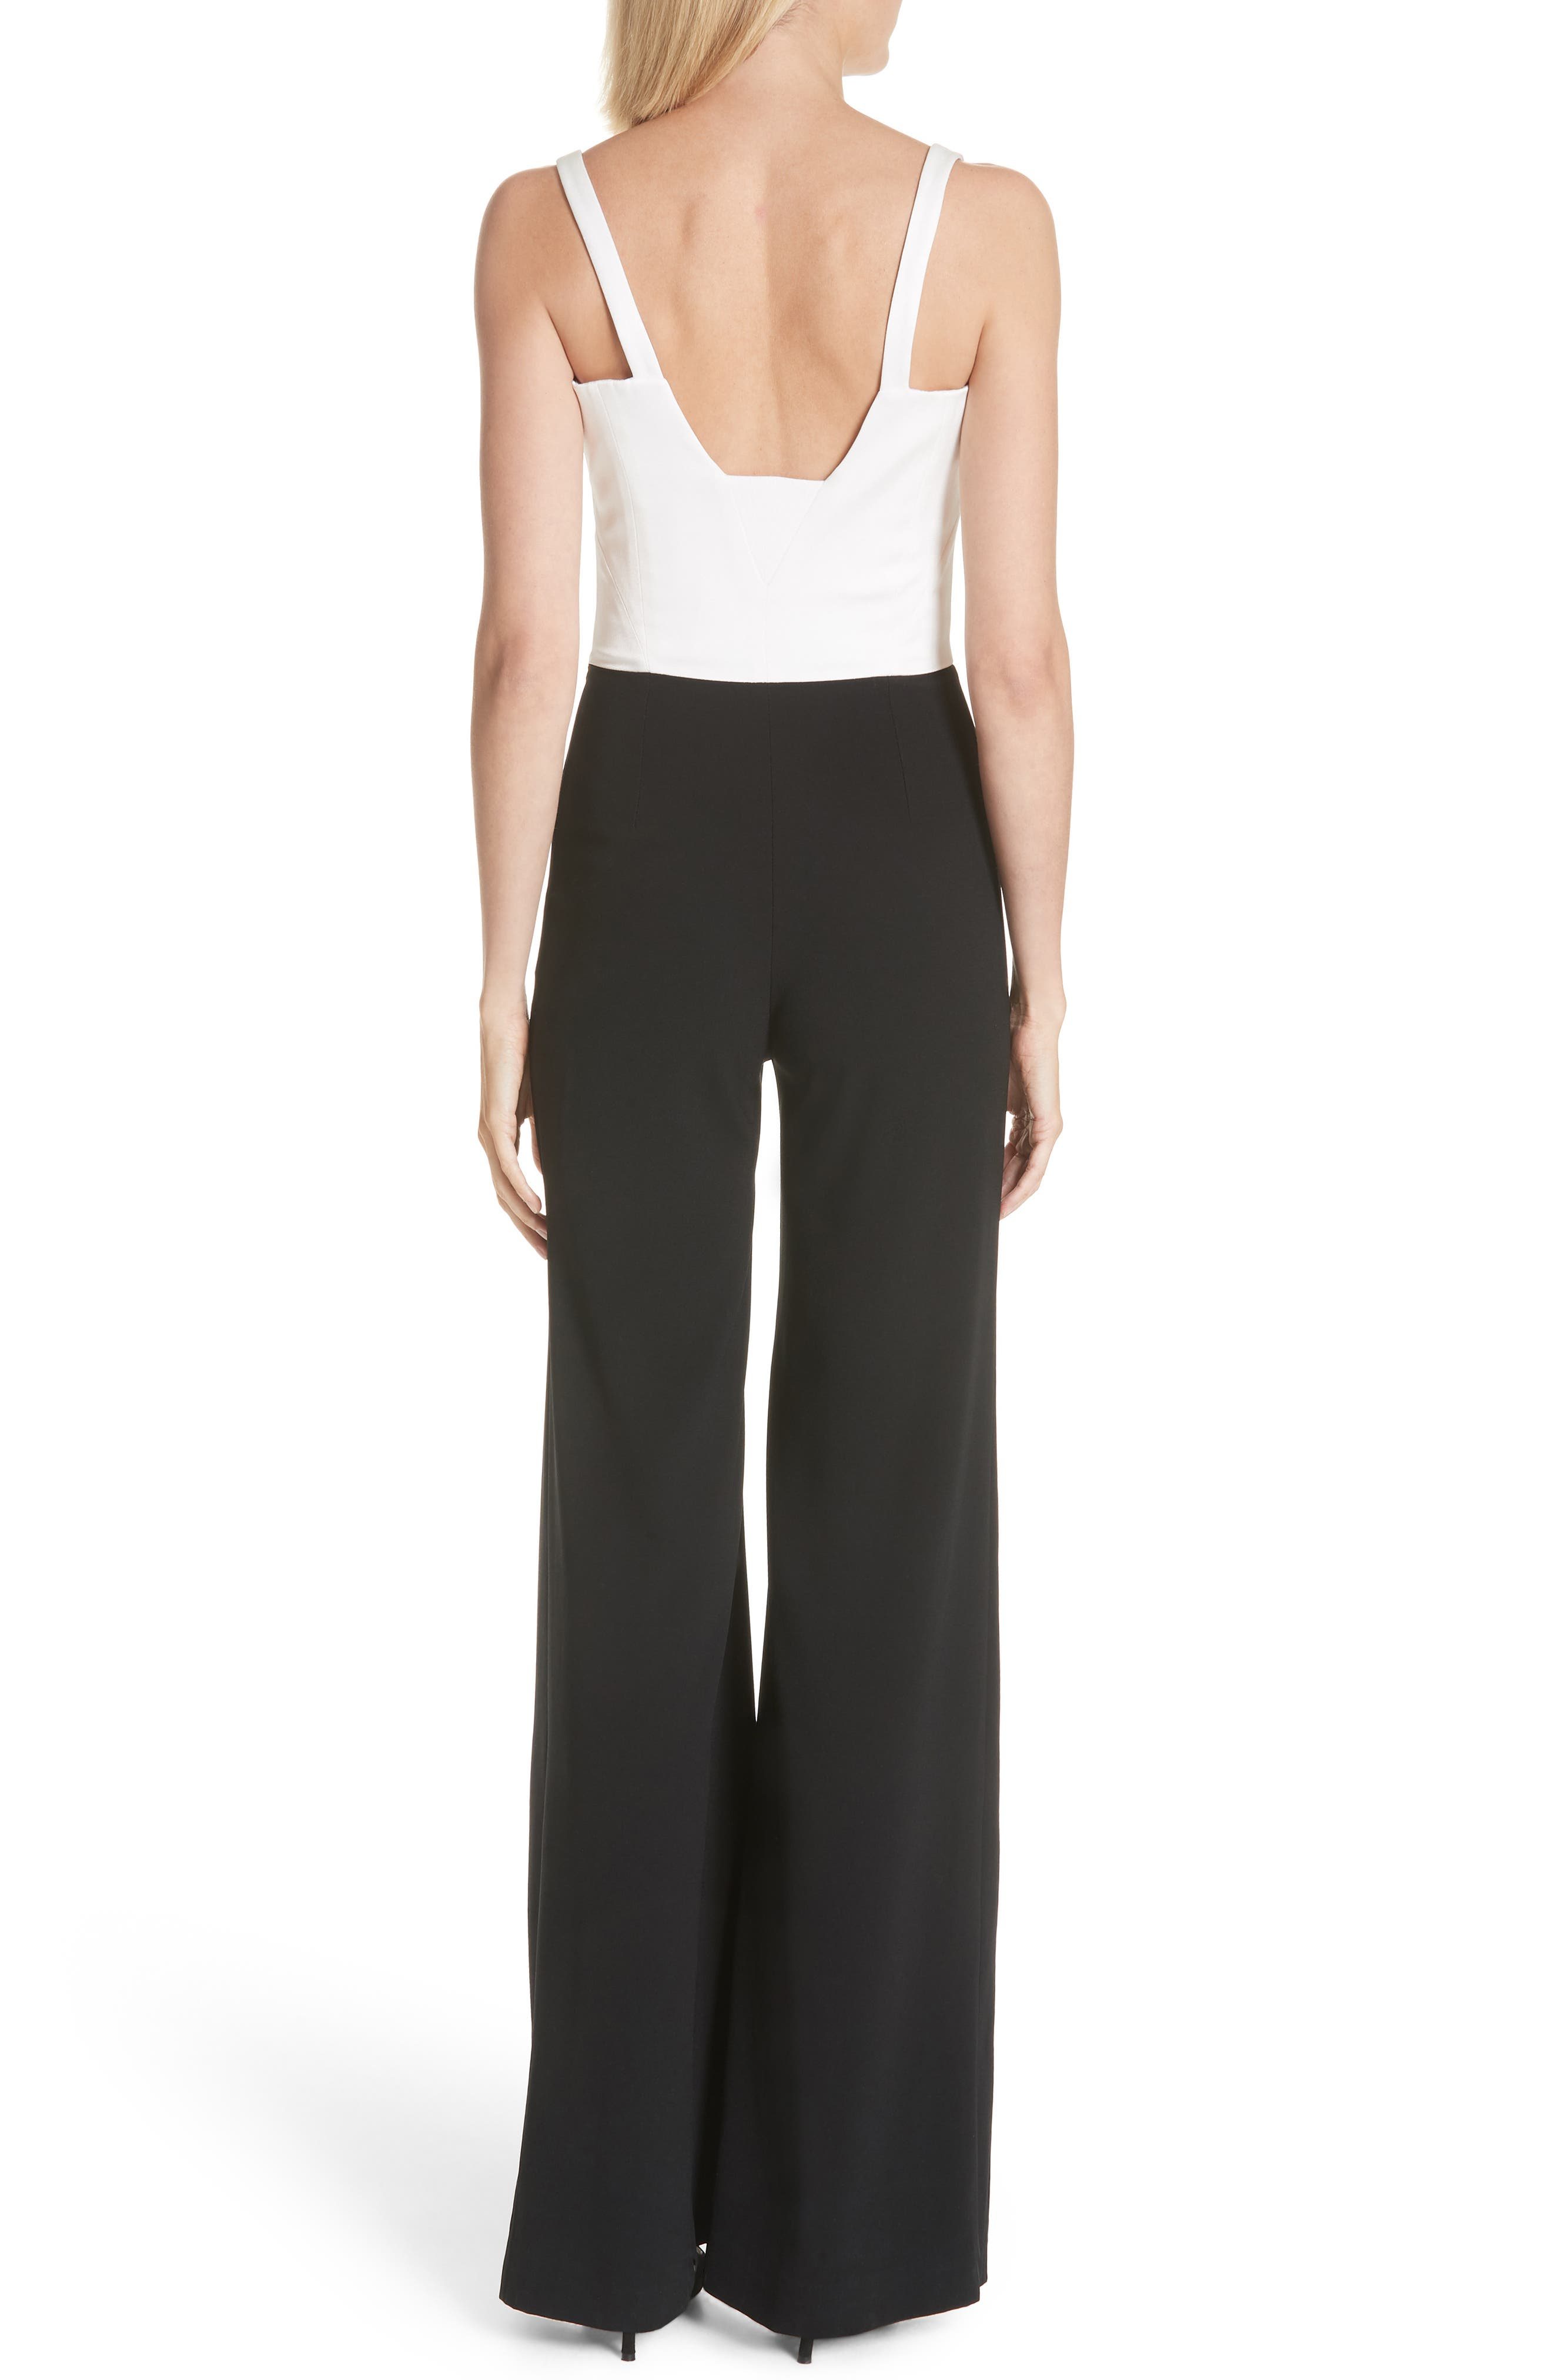 GALVAN, Eclipse Satin & Matte Crepe Jumpsuit, Alternate thumbnail 2, color, WHITE/ BLACK